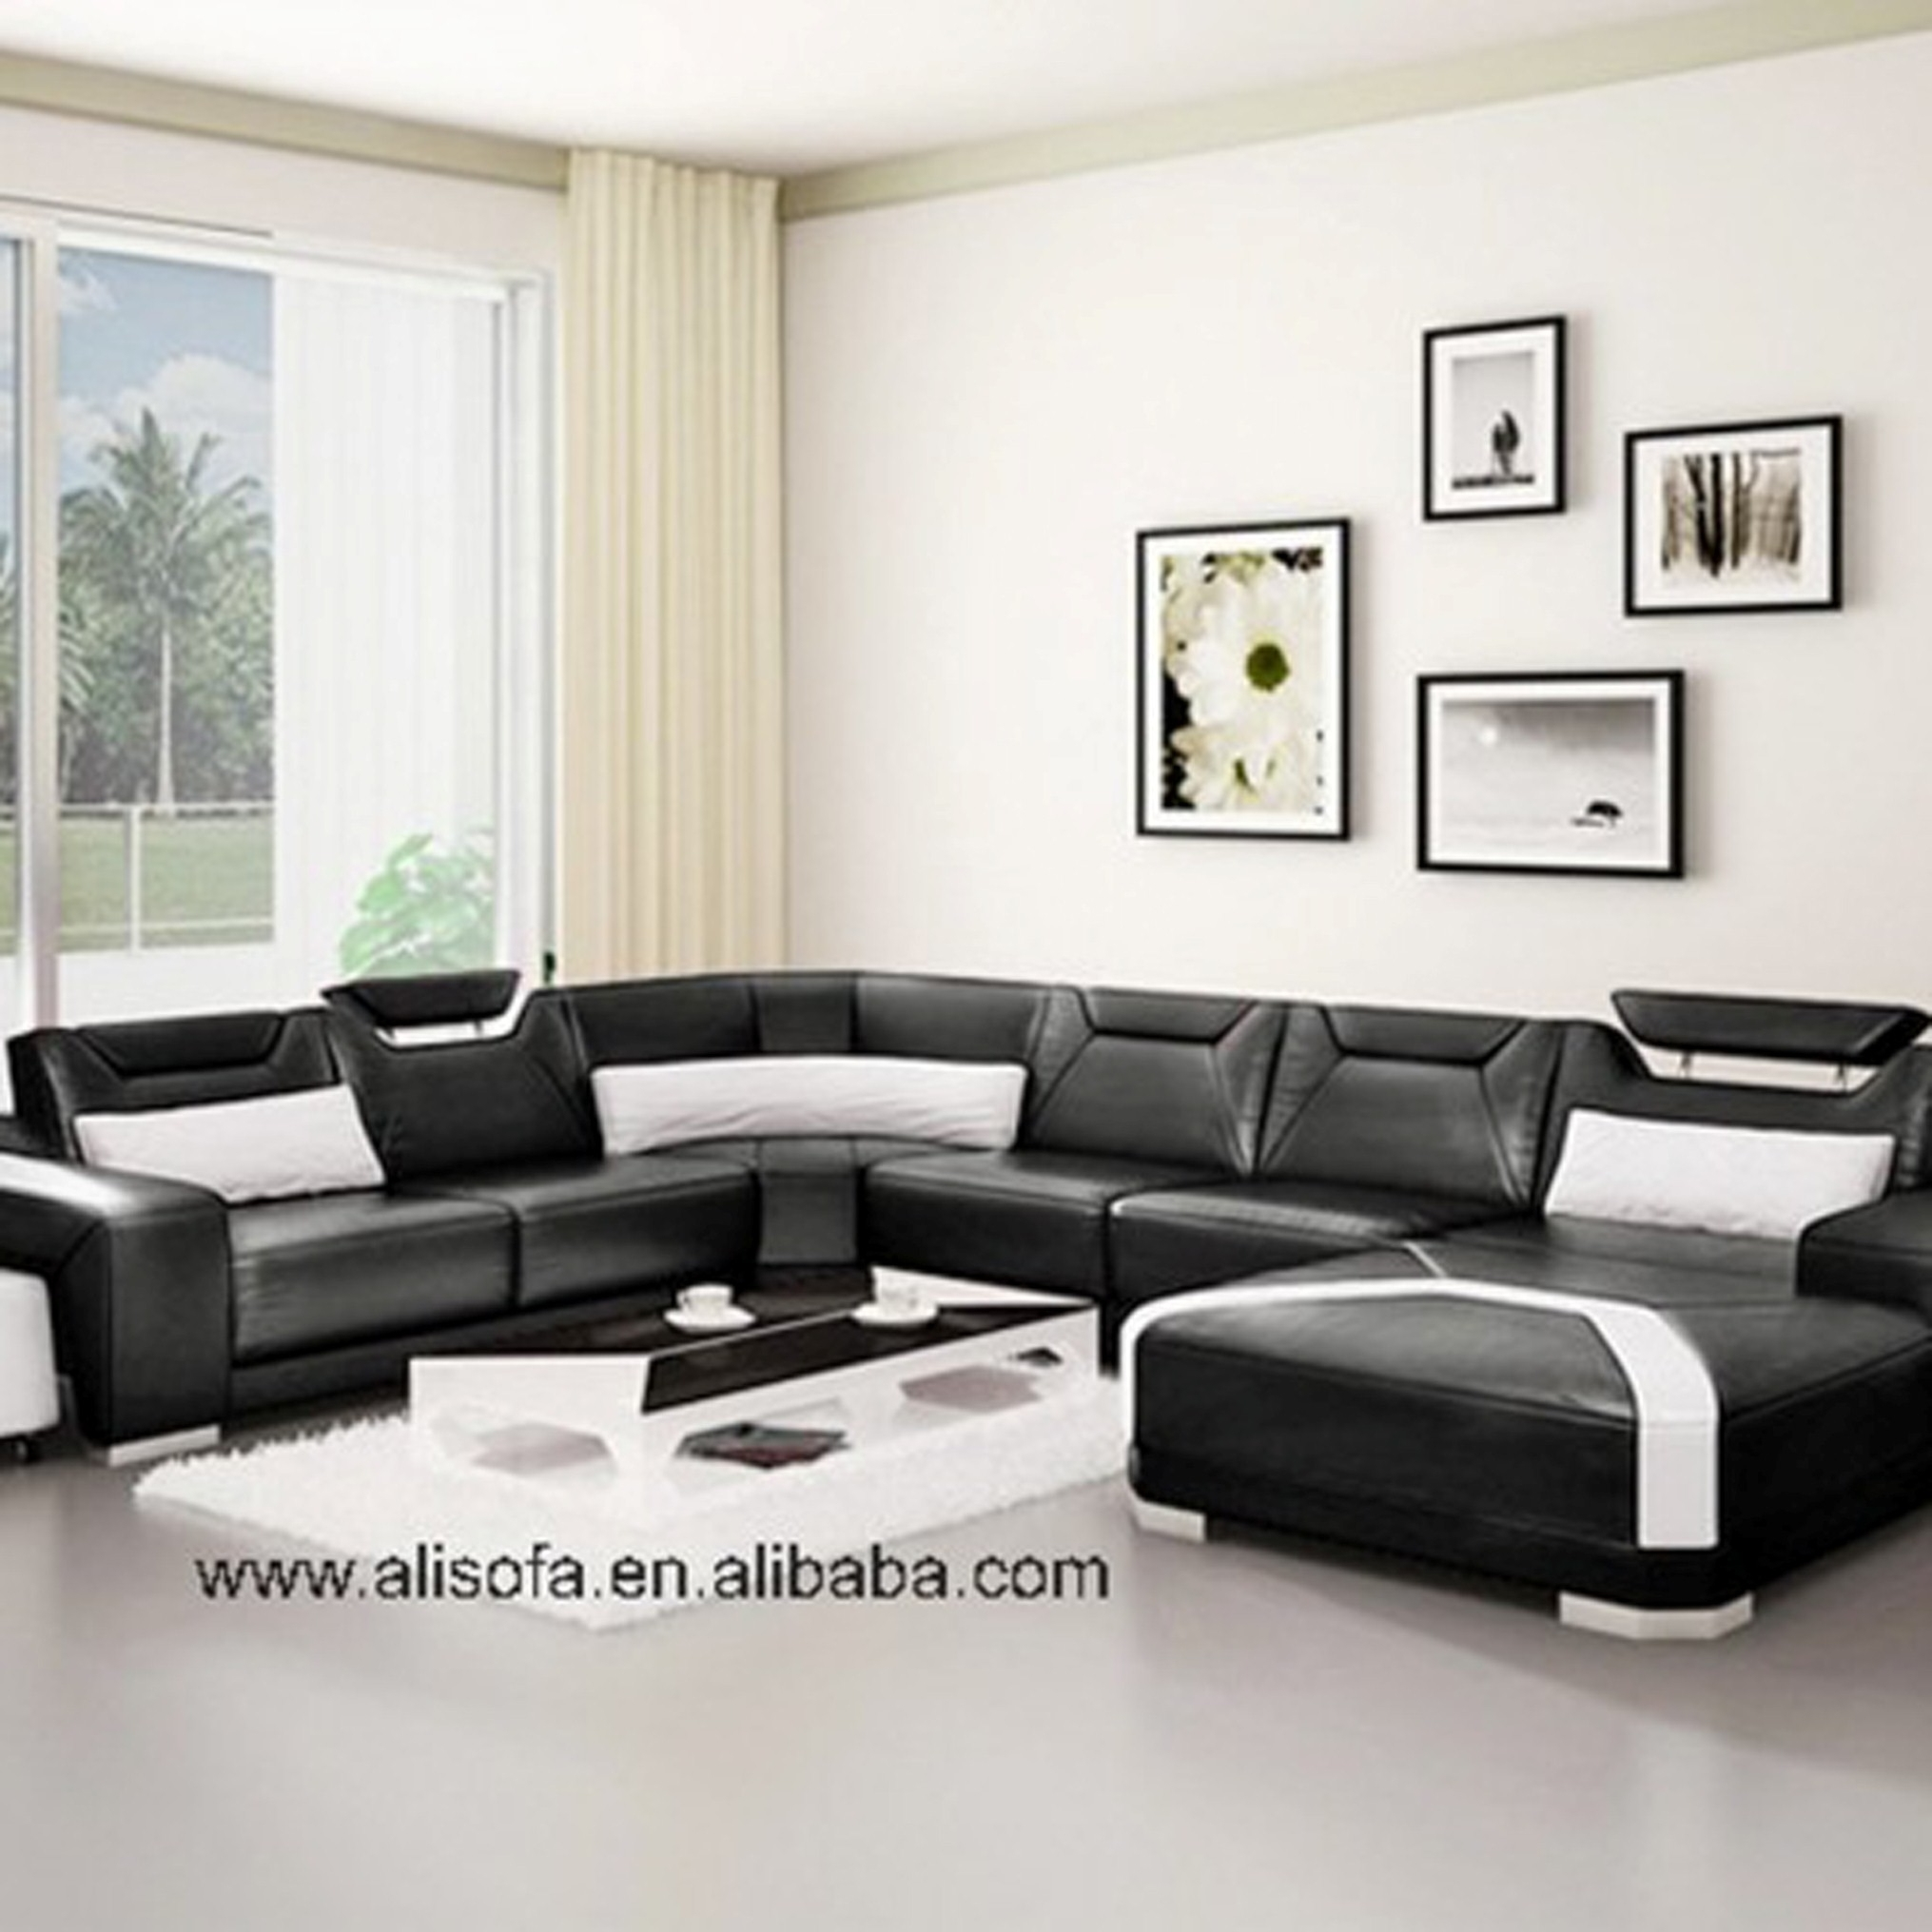 Luxury Living Room Design With Entrancing Black And White Furniture Sets Featruing Unique U Shaped Sofa Ideas Plus Likeable Wall Picture Frame Decoration (Image 92 of 123)